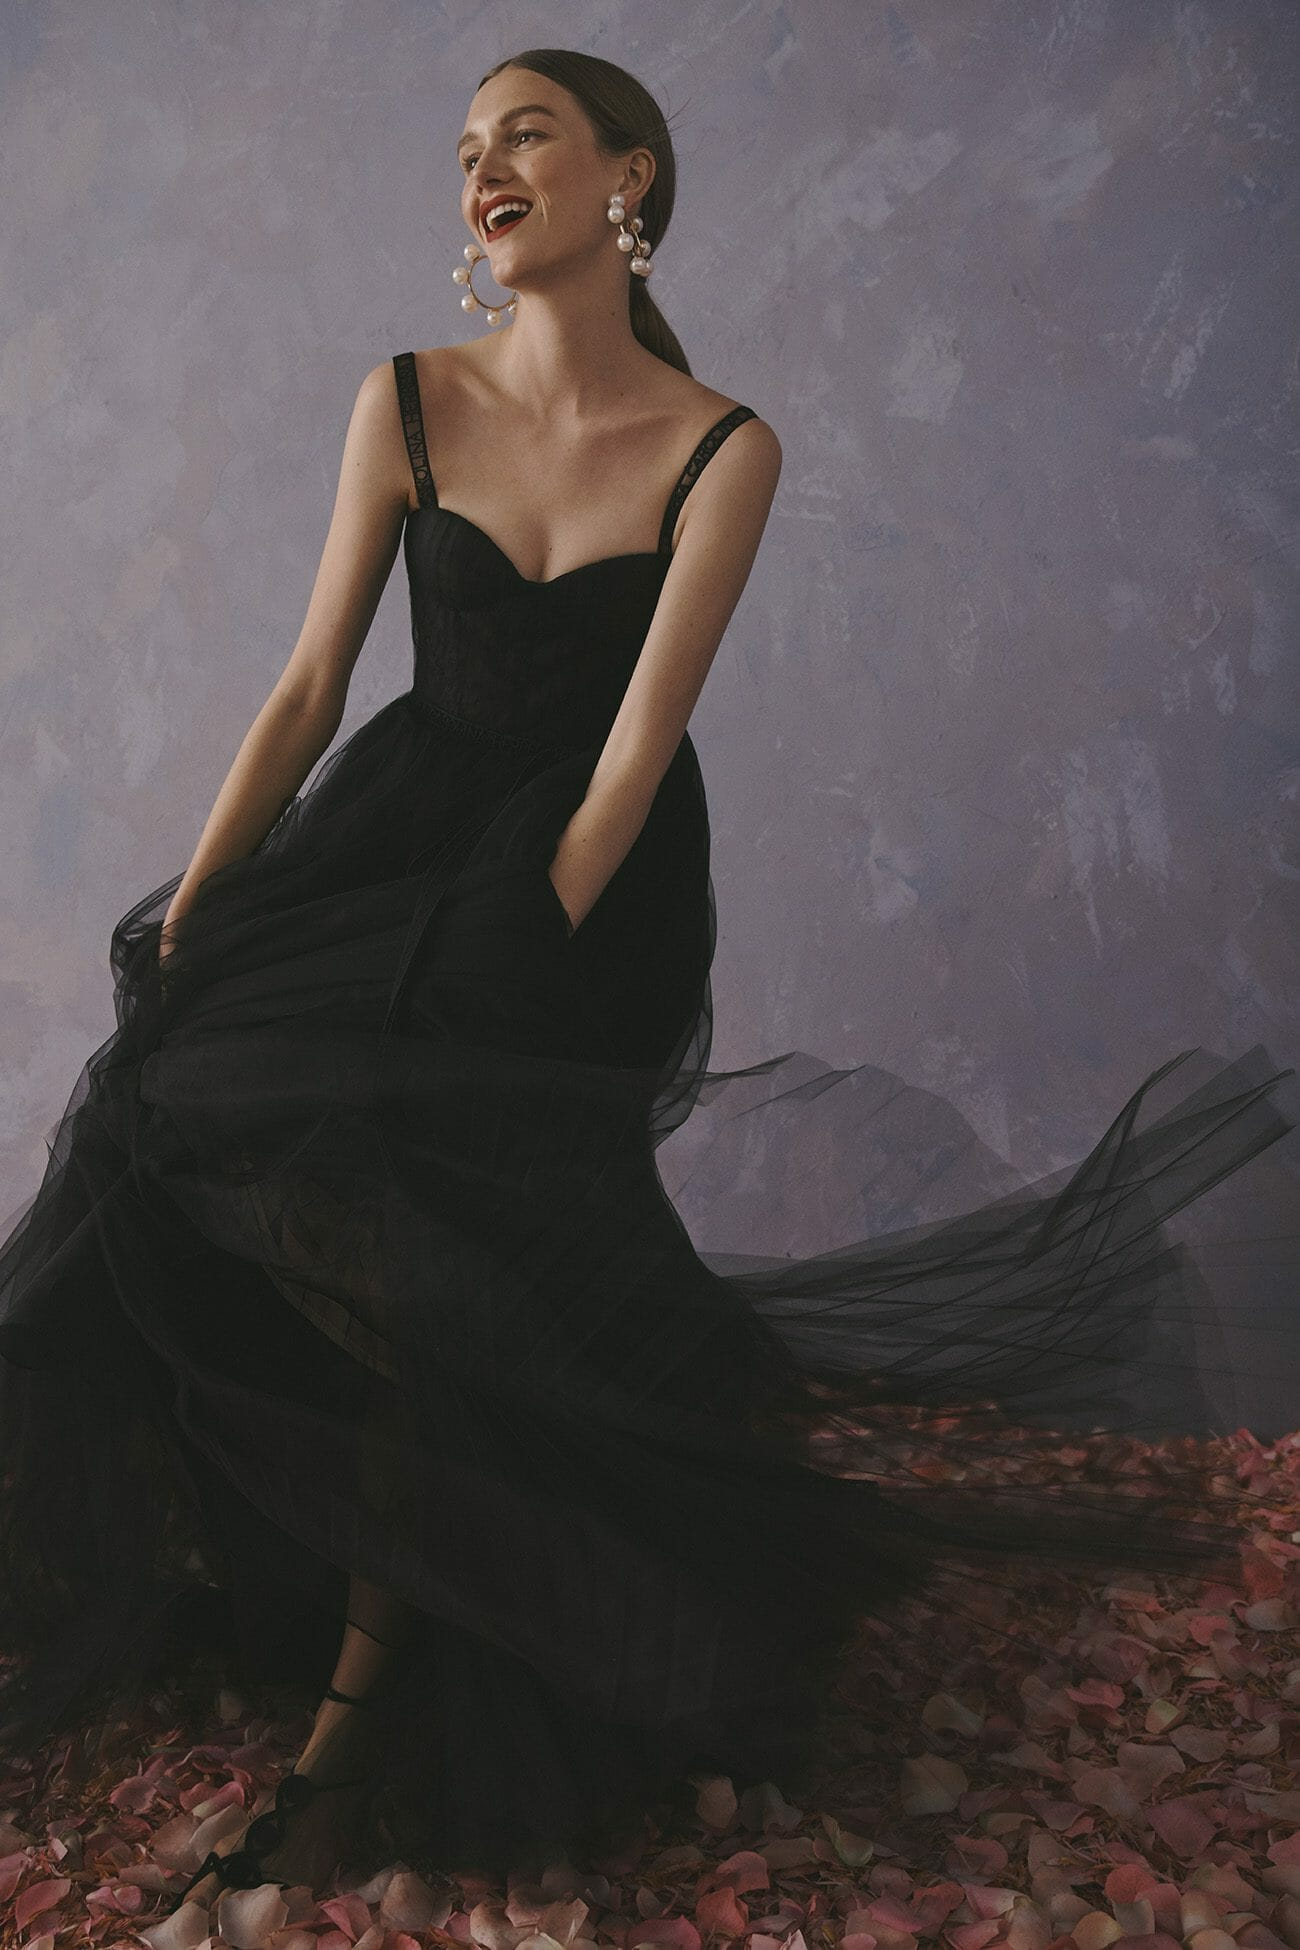 Carolina Herrera New York Resort 2020 Collection tulle black dress gown